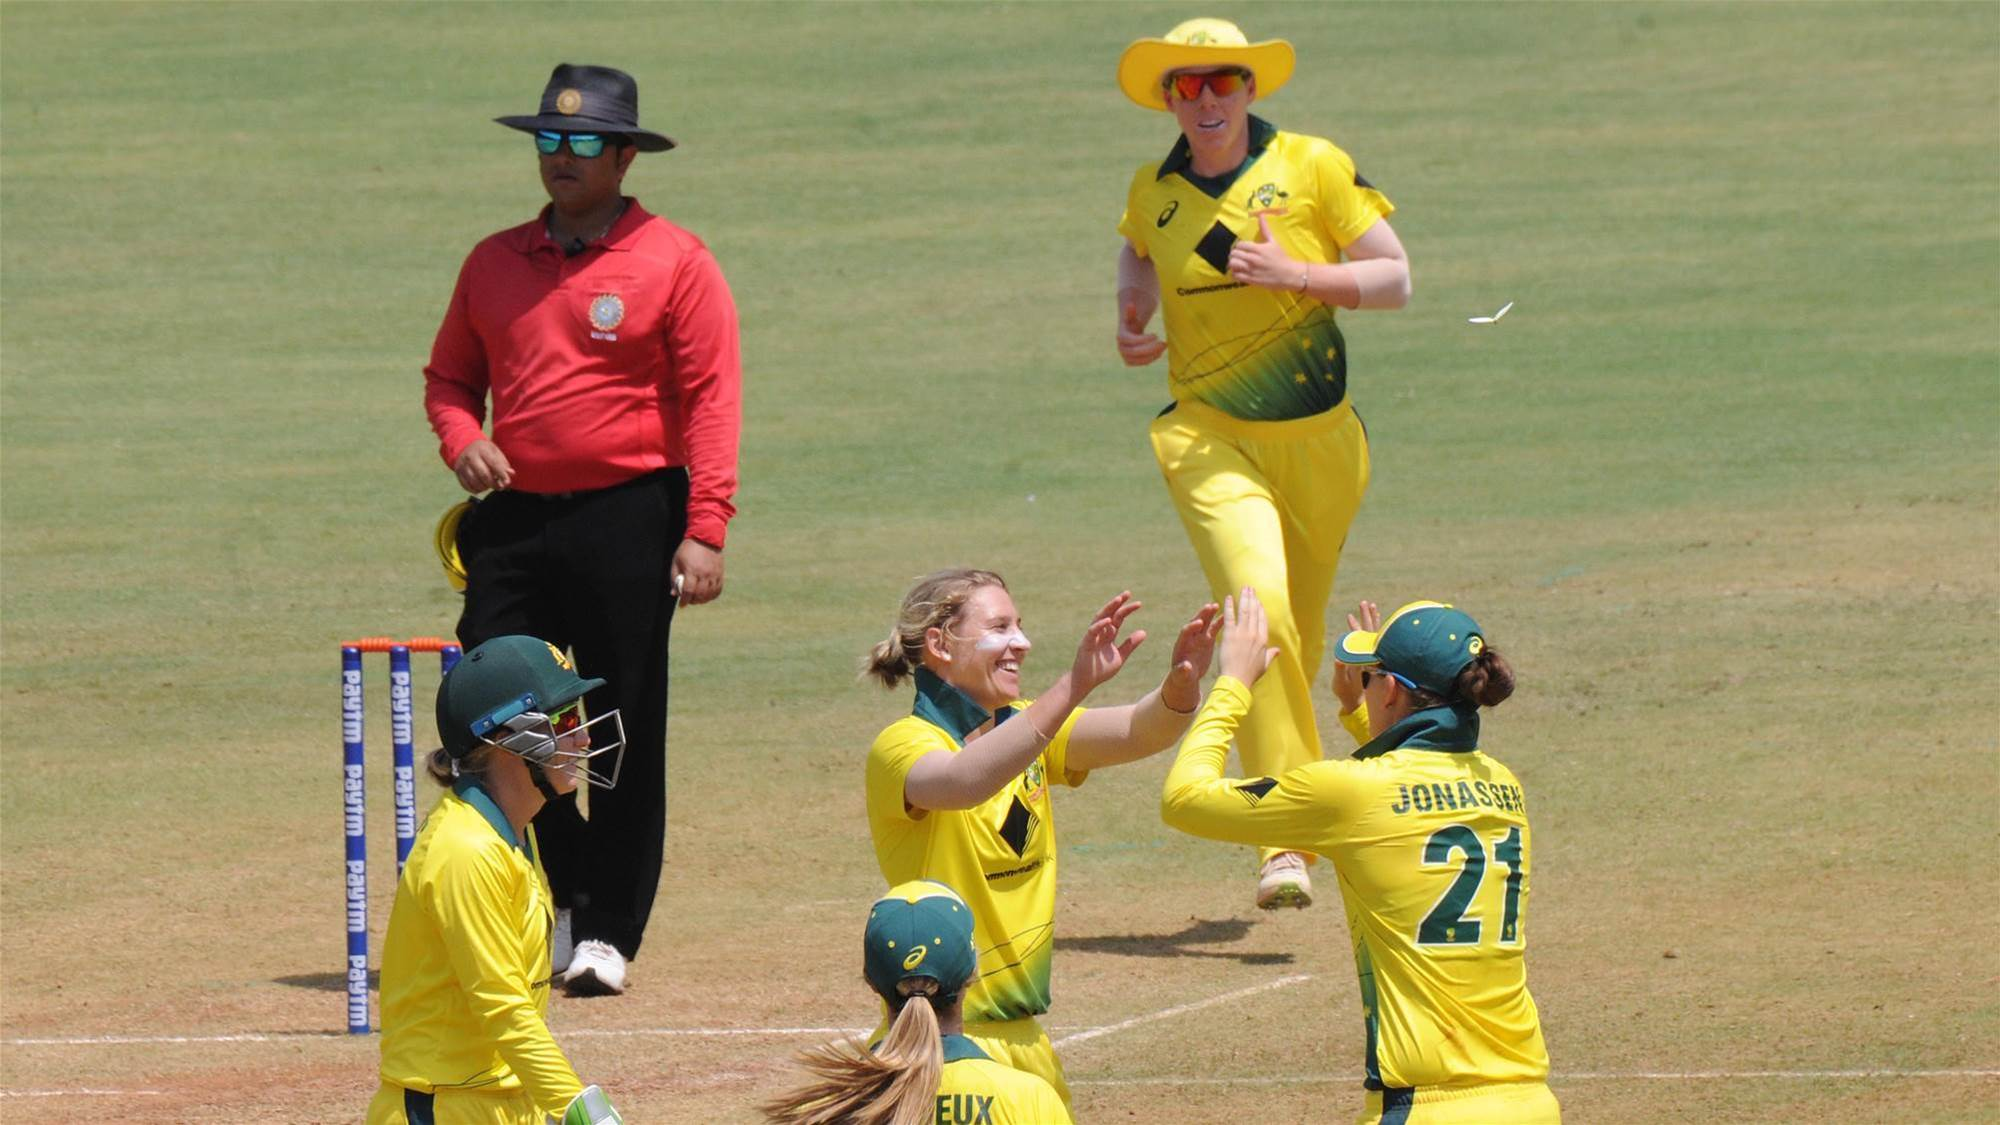 Australia's brilliant bowling effort crushes England